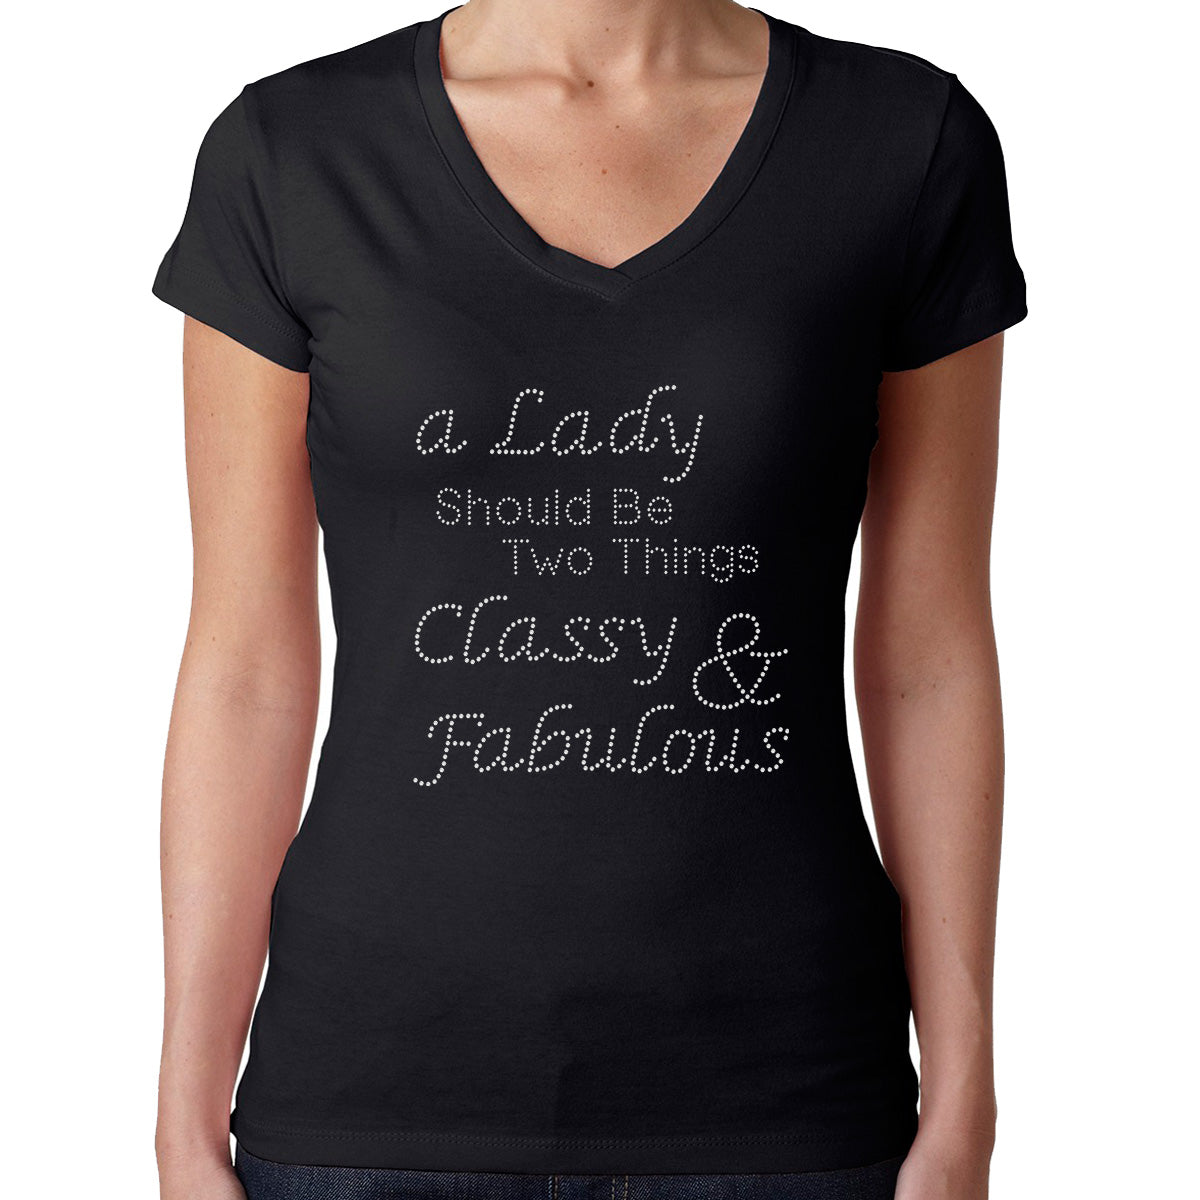 Womens T-Shirt Rhinestone Bling Black Fitted Tee Lady should be Classy Fabulous